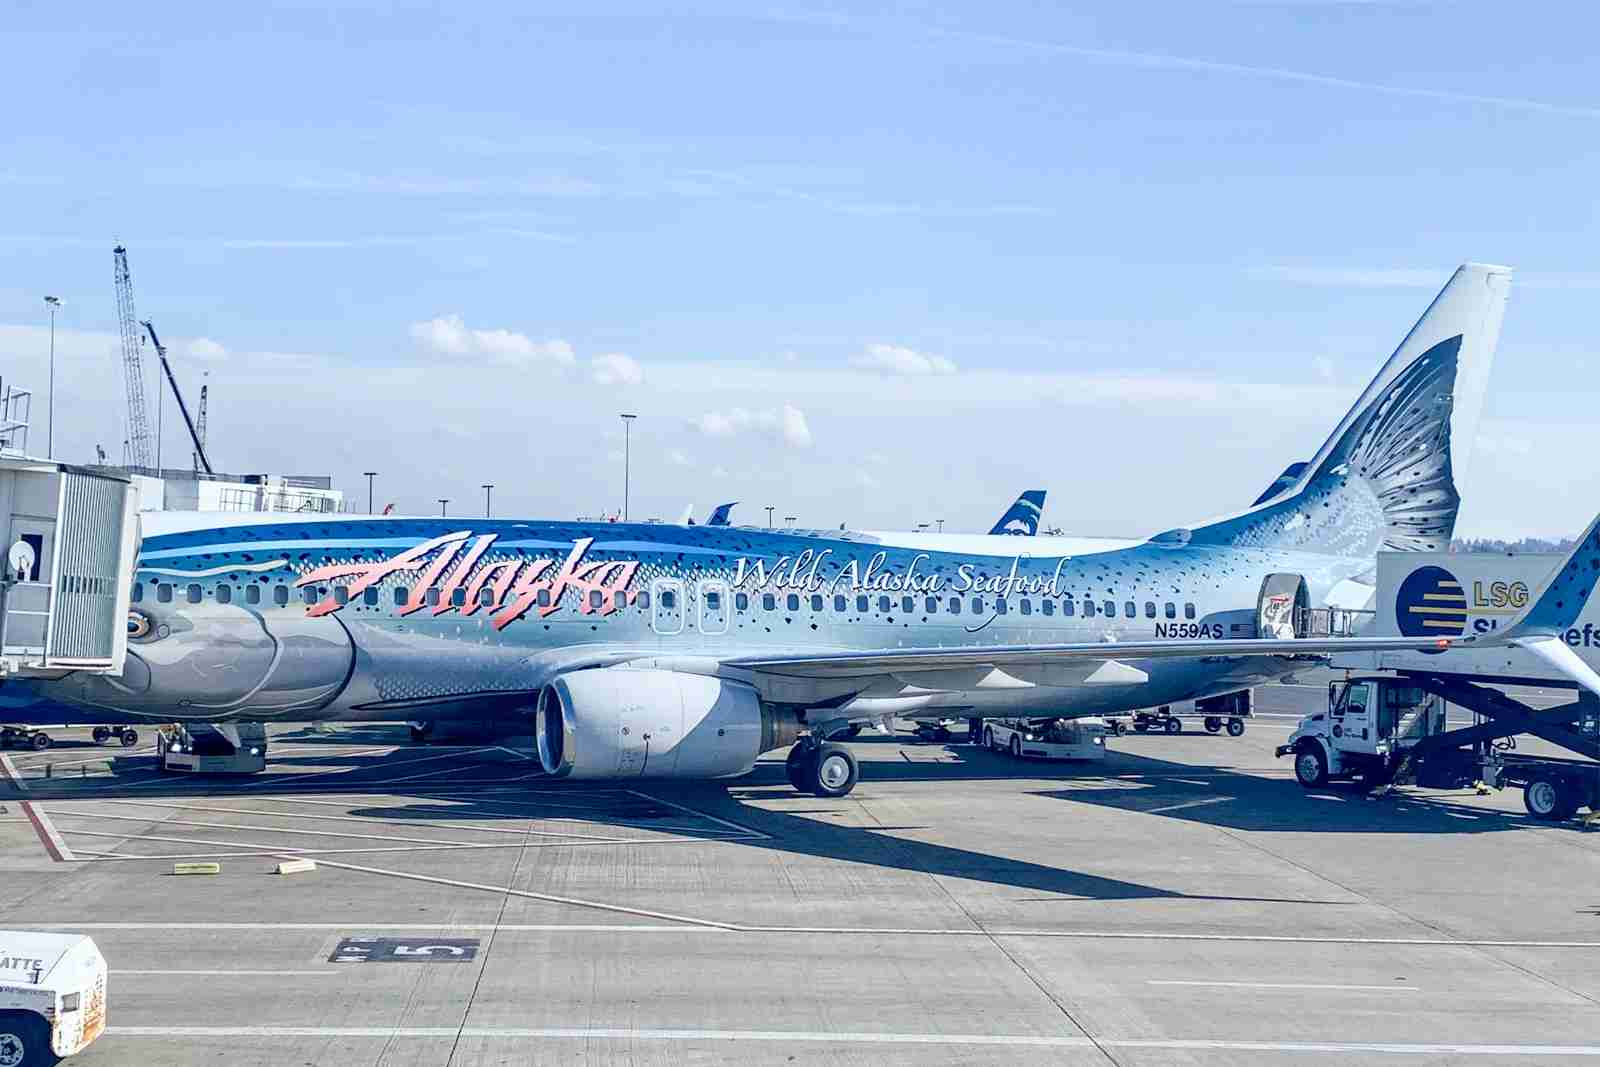 Alaska Airlines jet 2020. (Photo by Clint Henderson/The Points Guy)